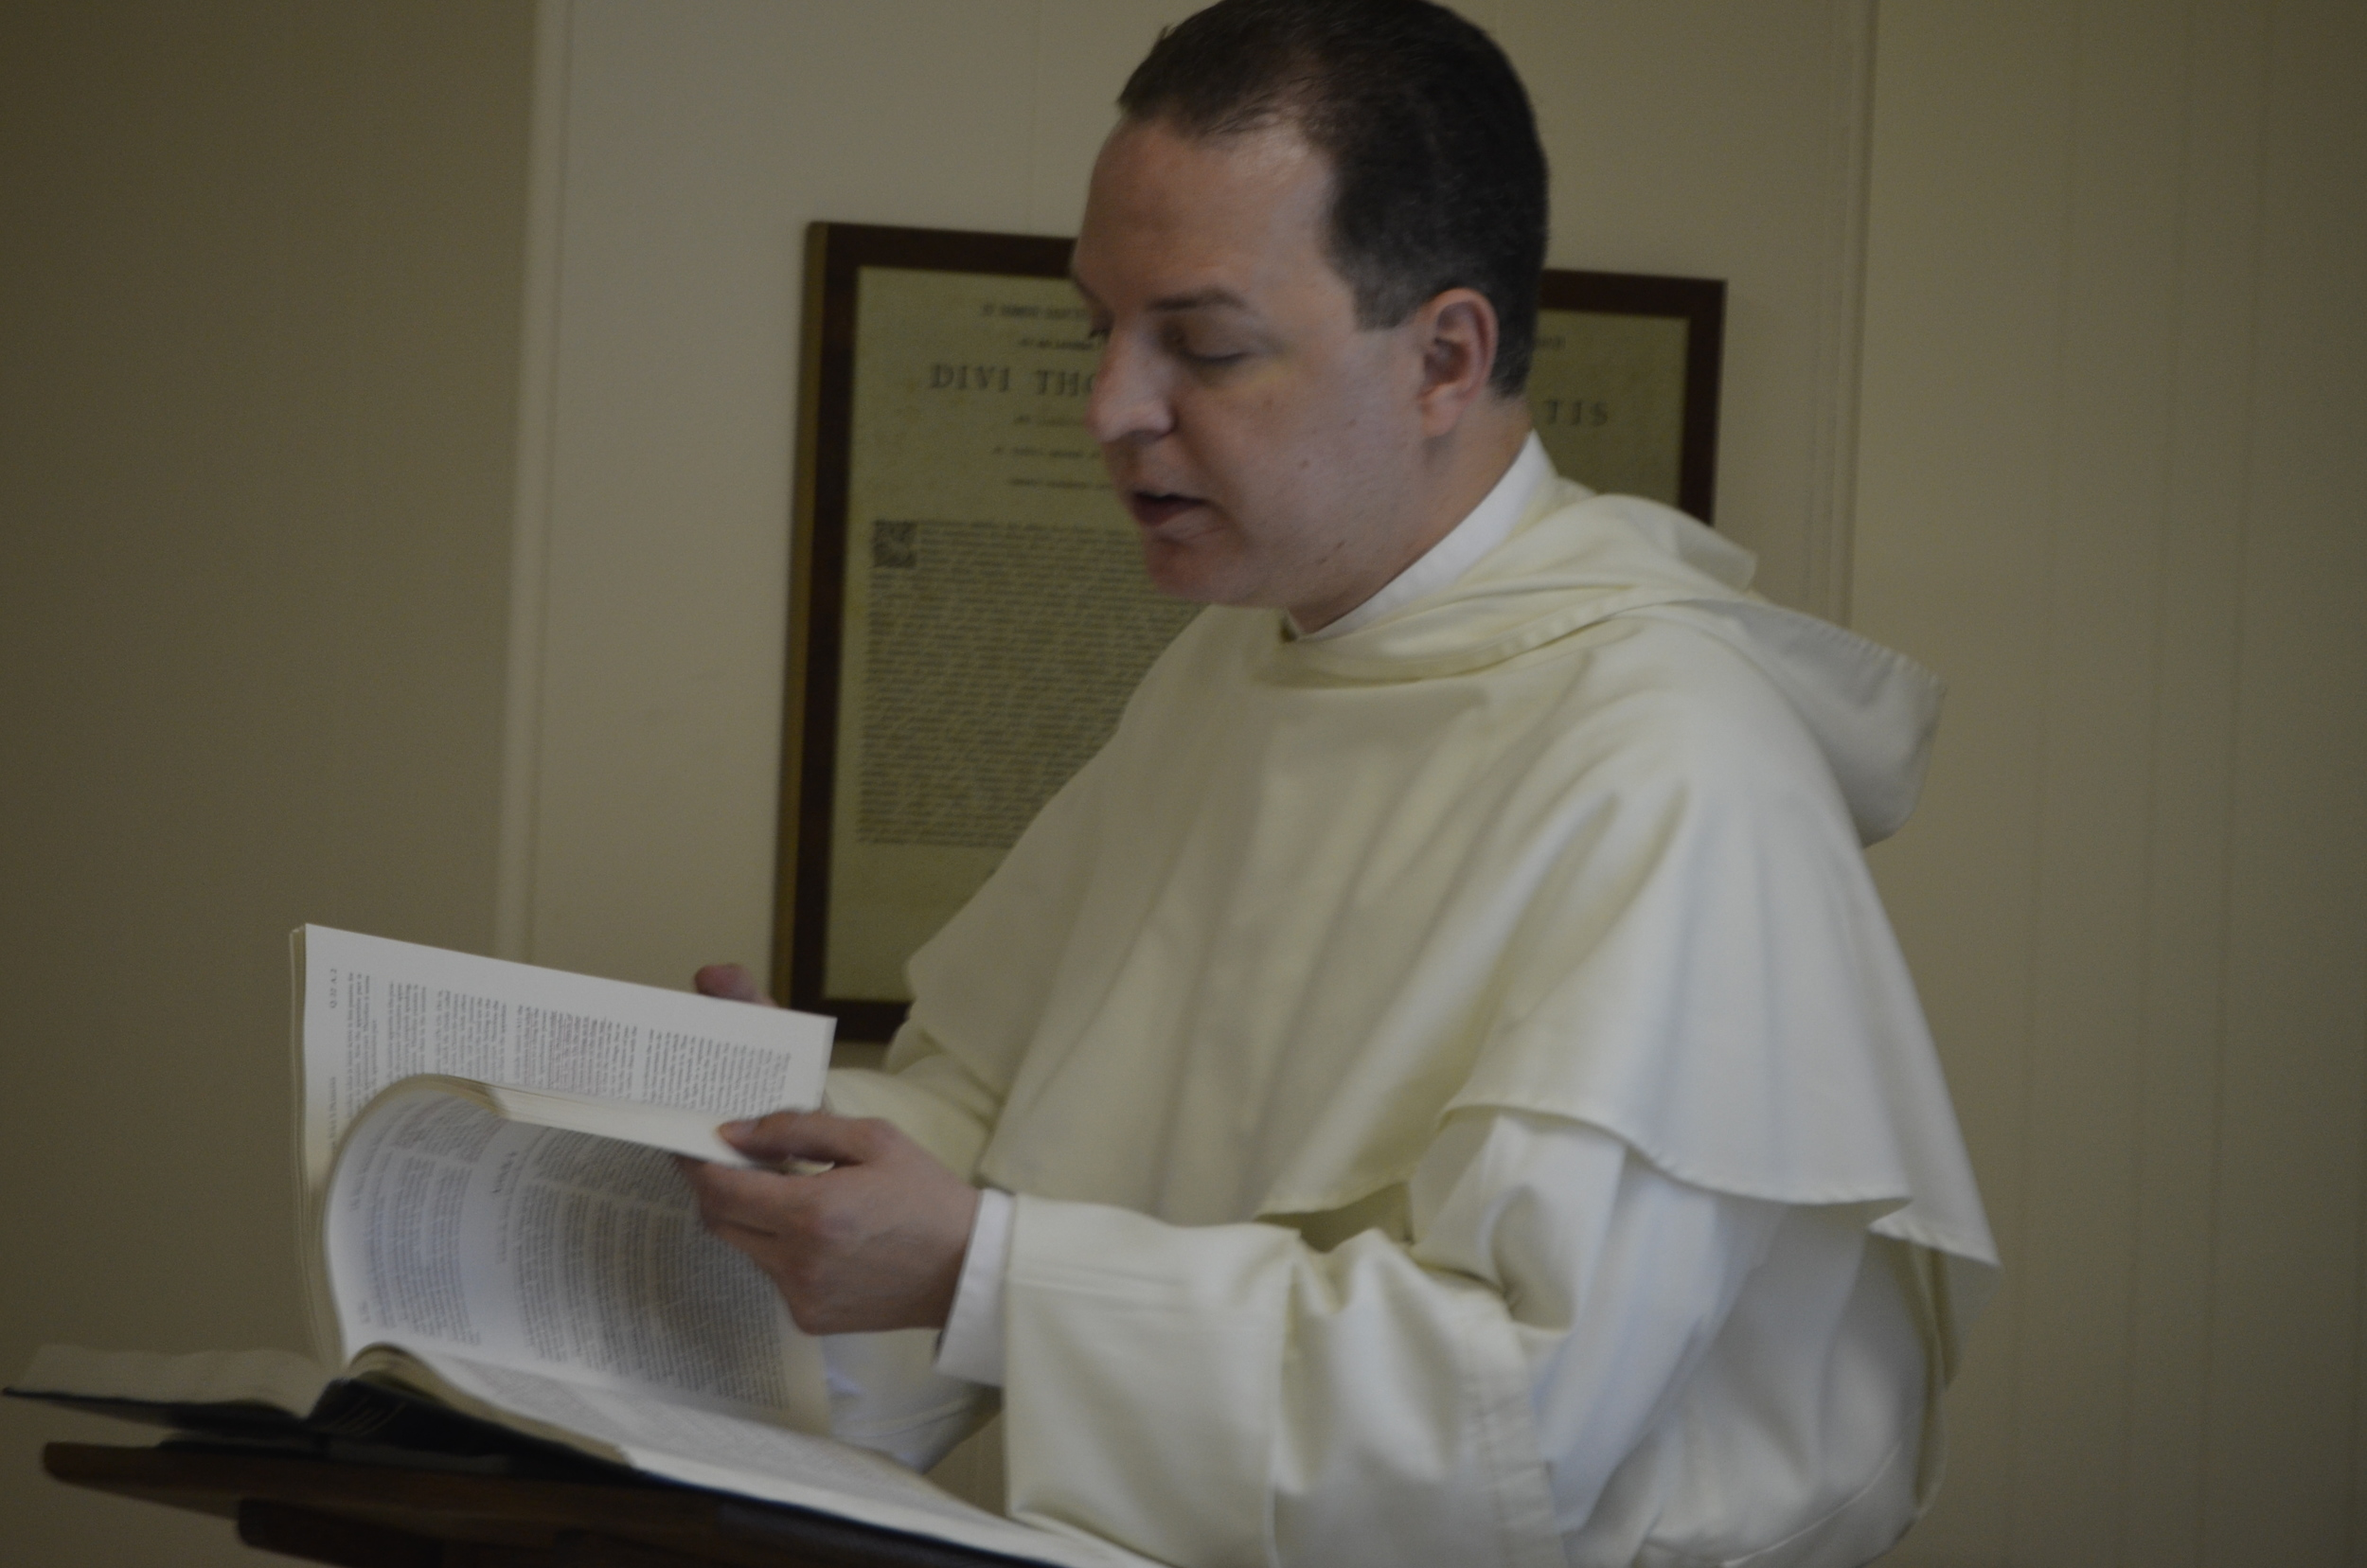 Fr. Thomas Pietri teaches the second week's course.